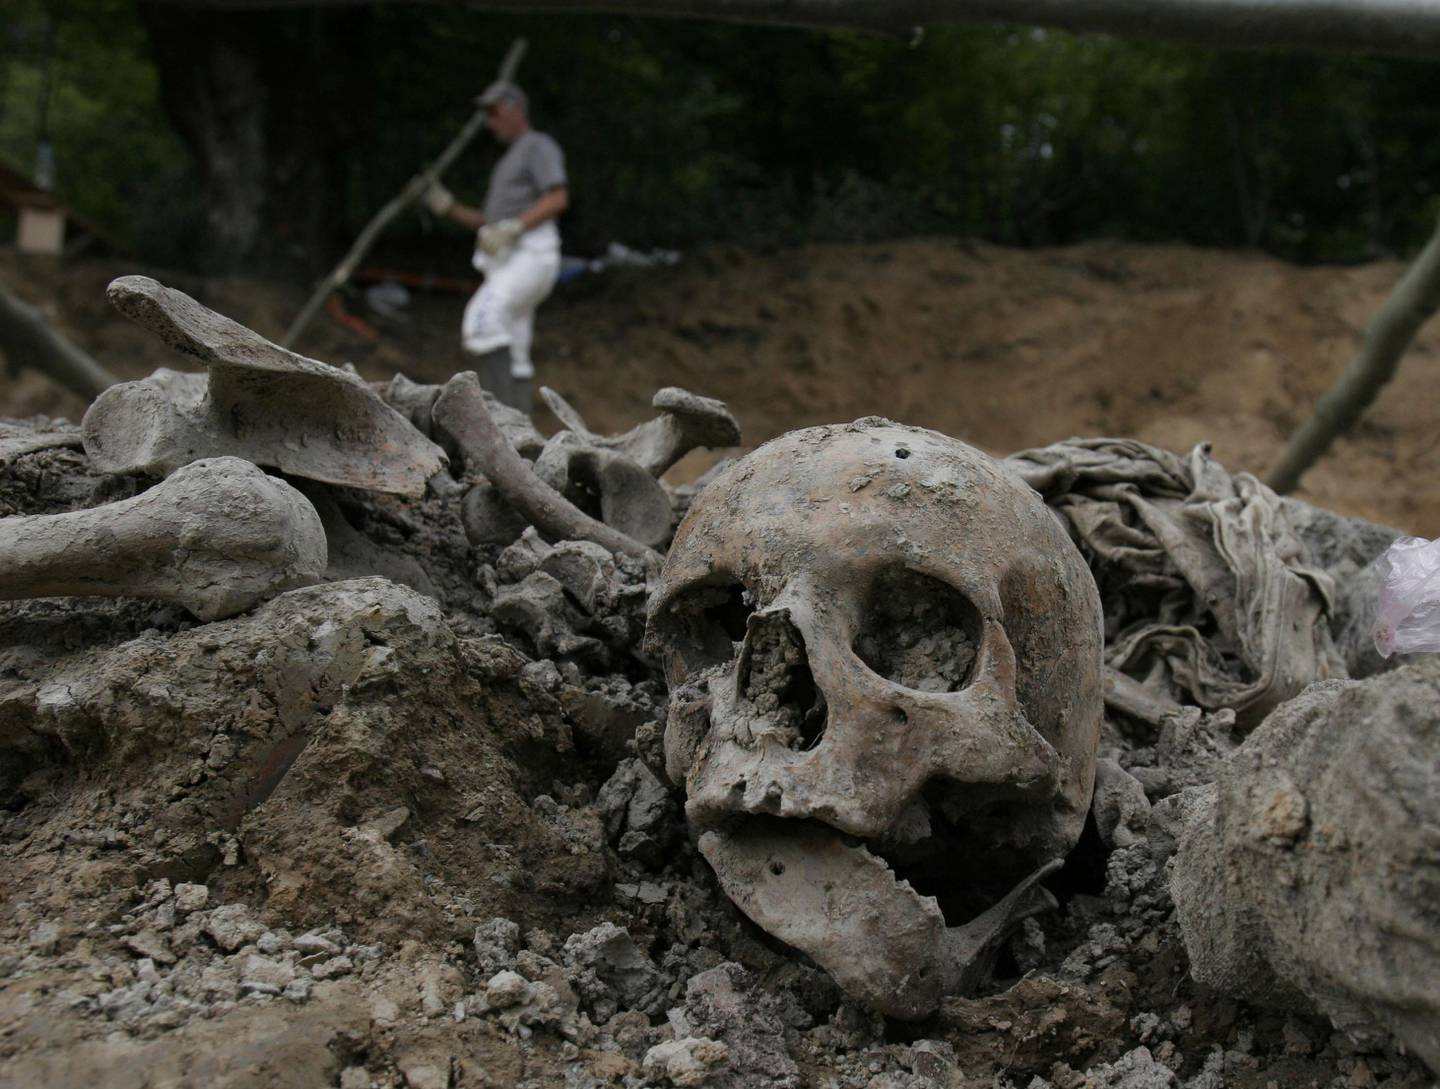 FILE - A July, 10, 2007 file photo shows a Bosnian worker passing by a human skull during exhumation at a mass grave site in a village of Budak, near Srebrenica, Bosnia-Herzegovina. Former Bosnian Serb Army chief Ratko Mladic will learn his fate on Nov. 22, 2017, when U.N. judges deliver verdicts in his genocide and war crimes trial. (AP Photo/Amel Emric, File)